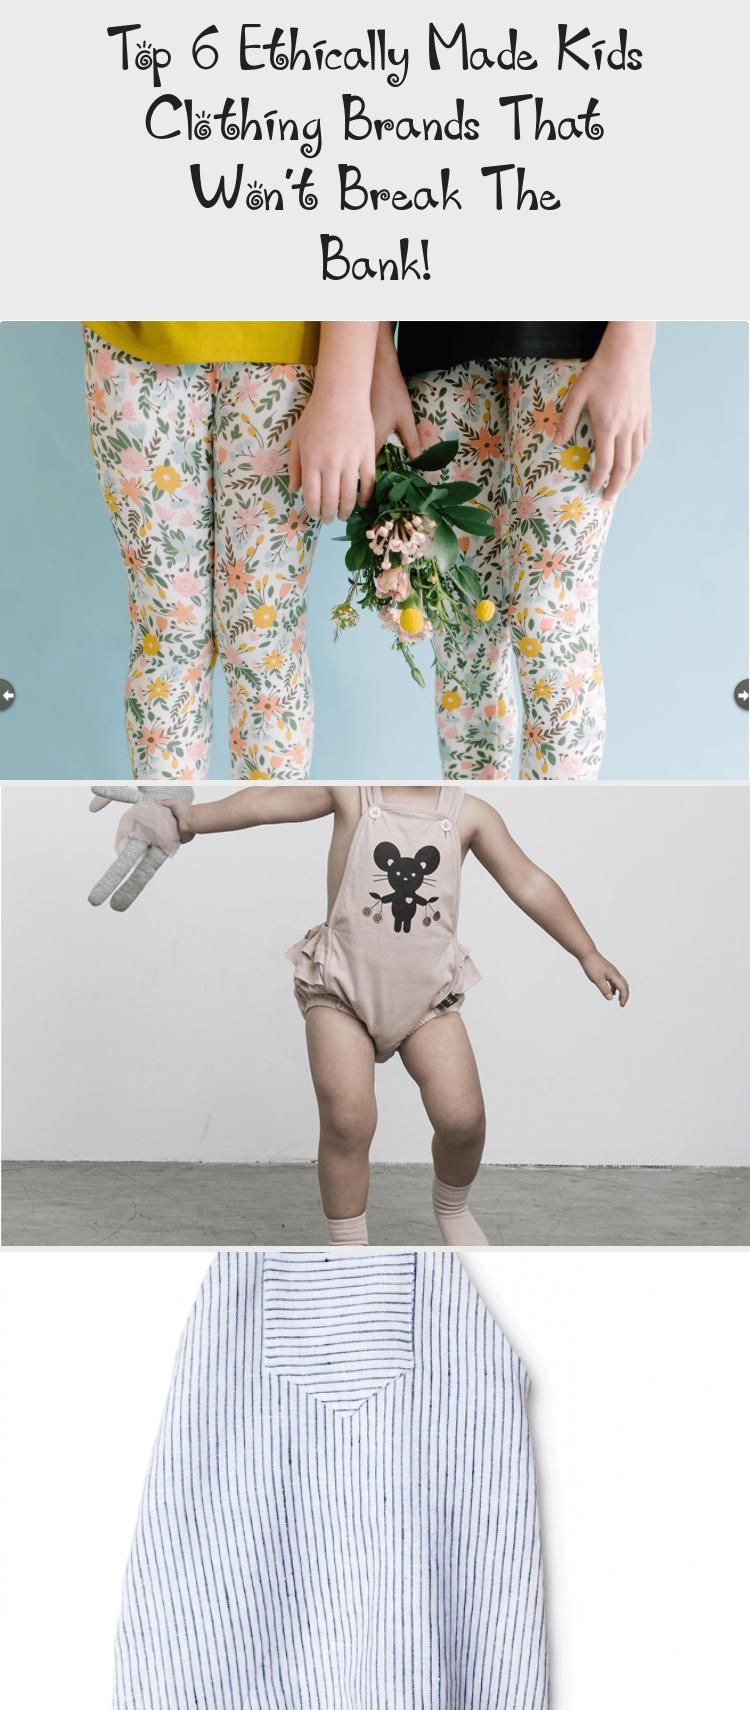 Top 6 ethically made kids clothing brands that WON'T break the bank!   Elle Lindquist #zarakidsRed #zarakidsInvierno #zarakidsJumpsuit #zarakidsDenim #zarakidsToddlers